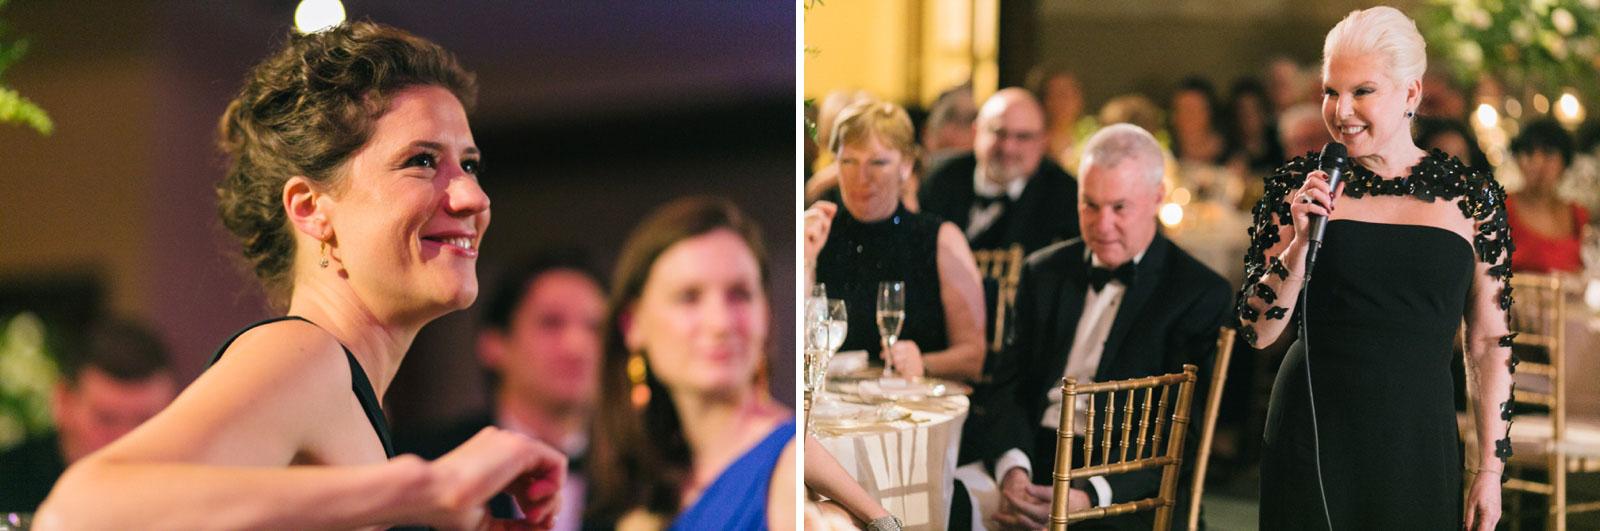 Wedding guests reactions during mother of the bride speech at modern black tie wedding in boston